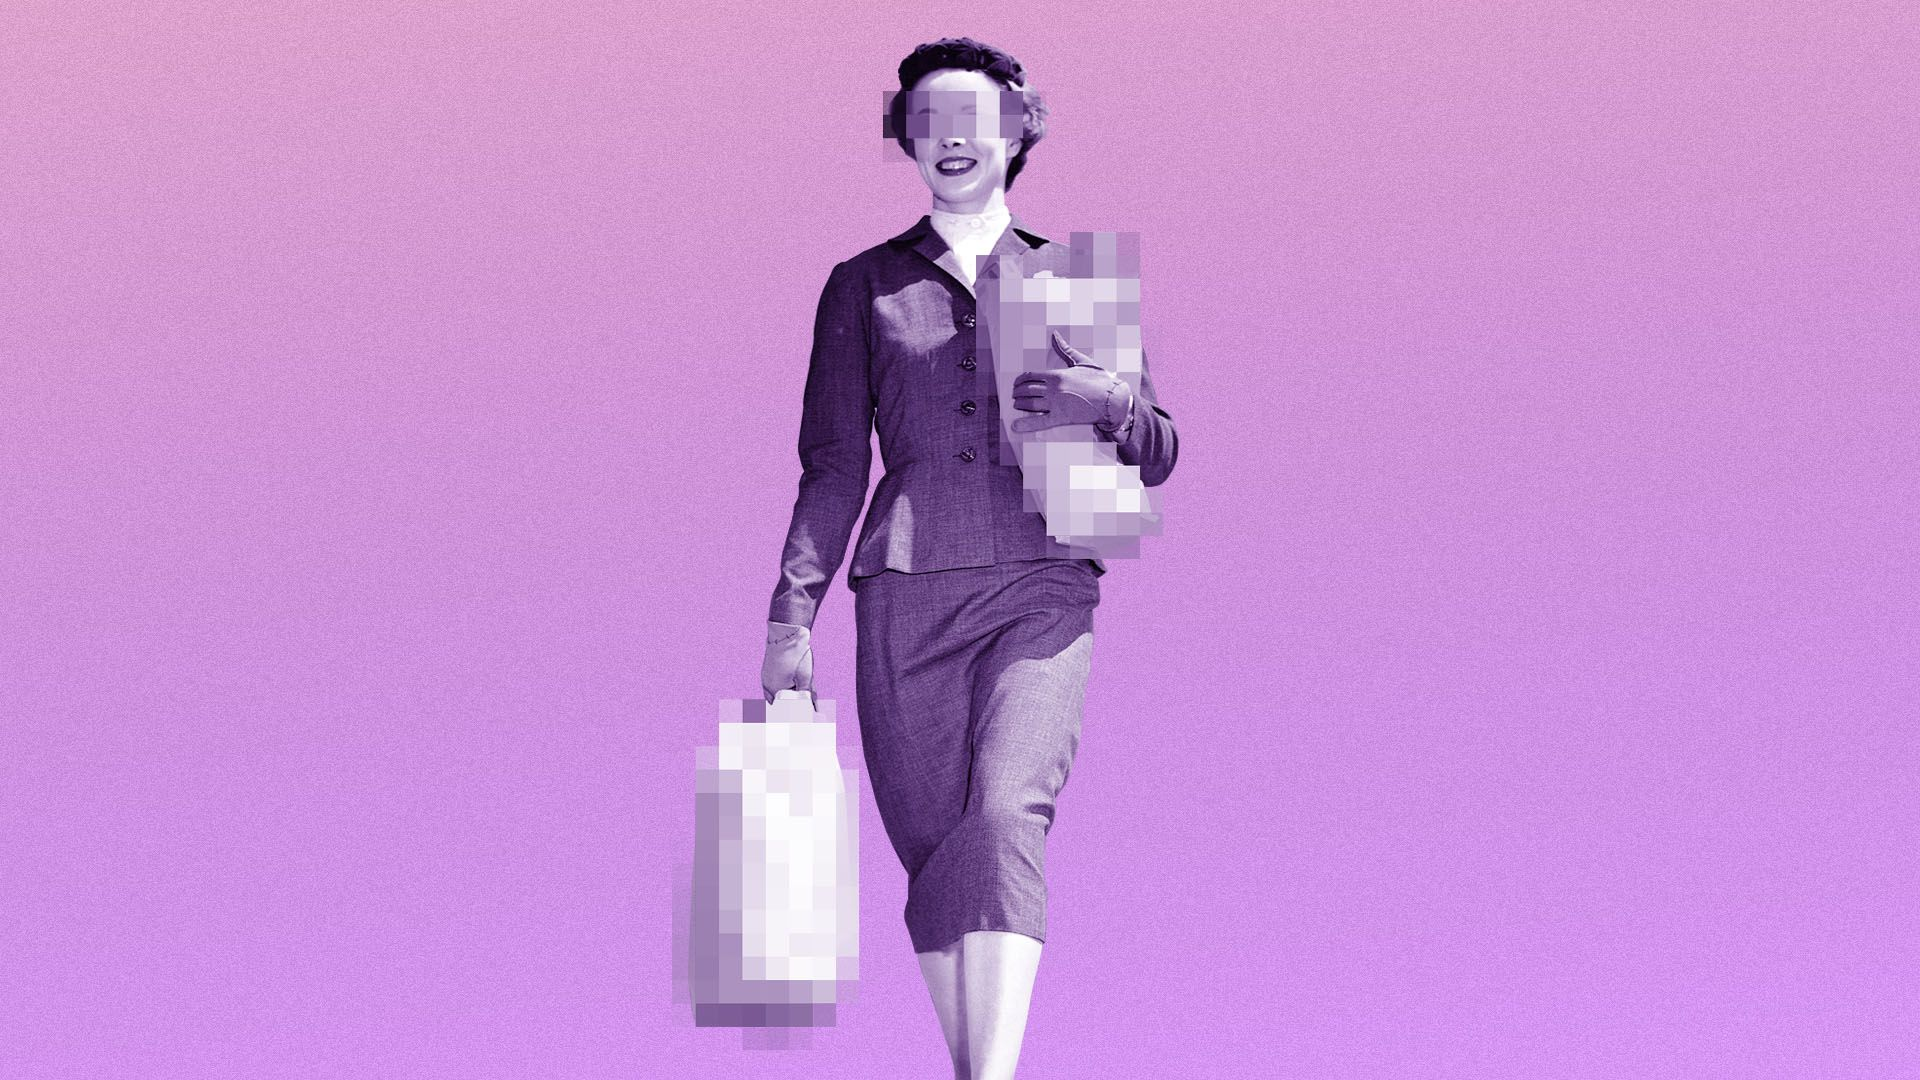 Illustration of a woman with pixelated eyes in vintage style holding pixelated shopping bags